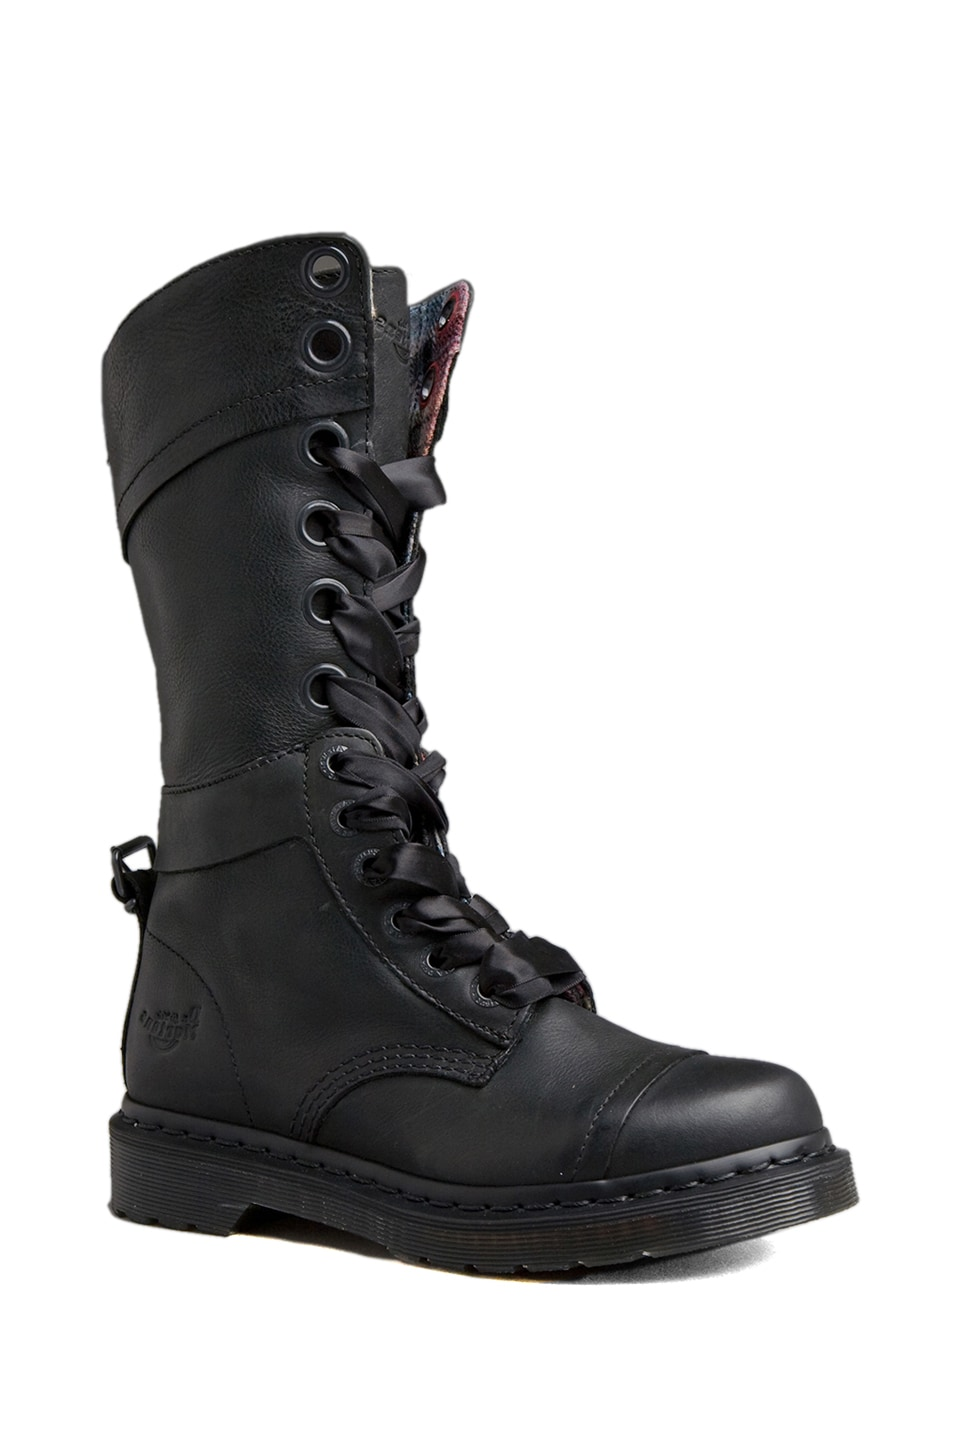 Dr. Martens Triumph 1914 14 Eye Boot in Black